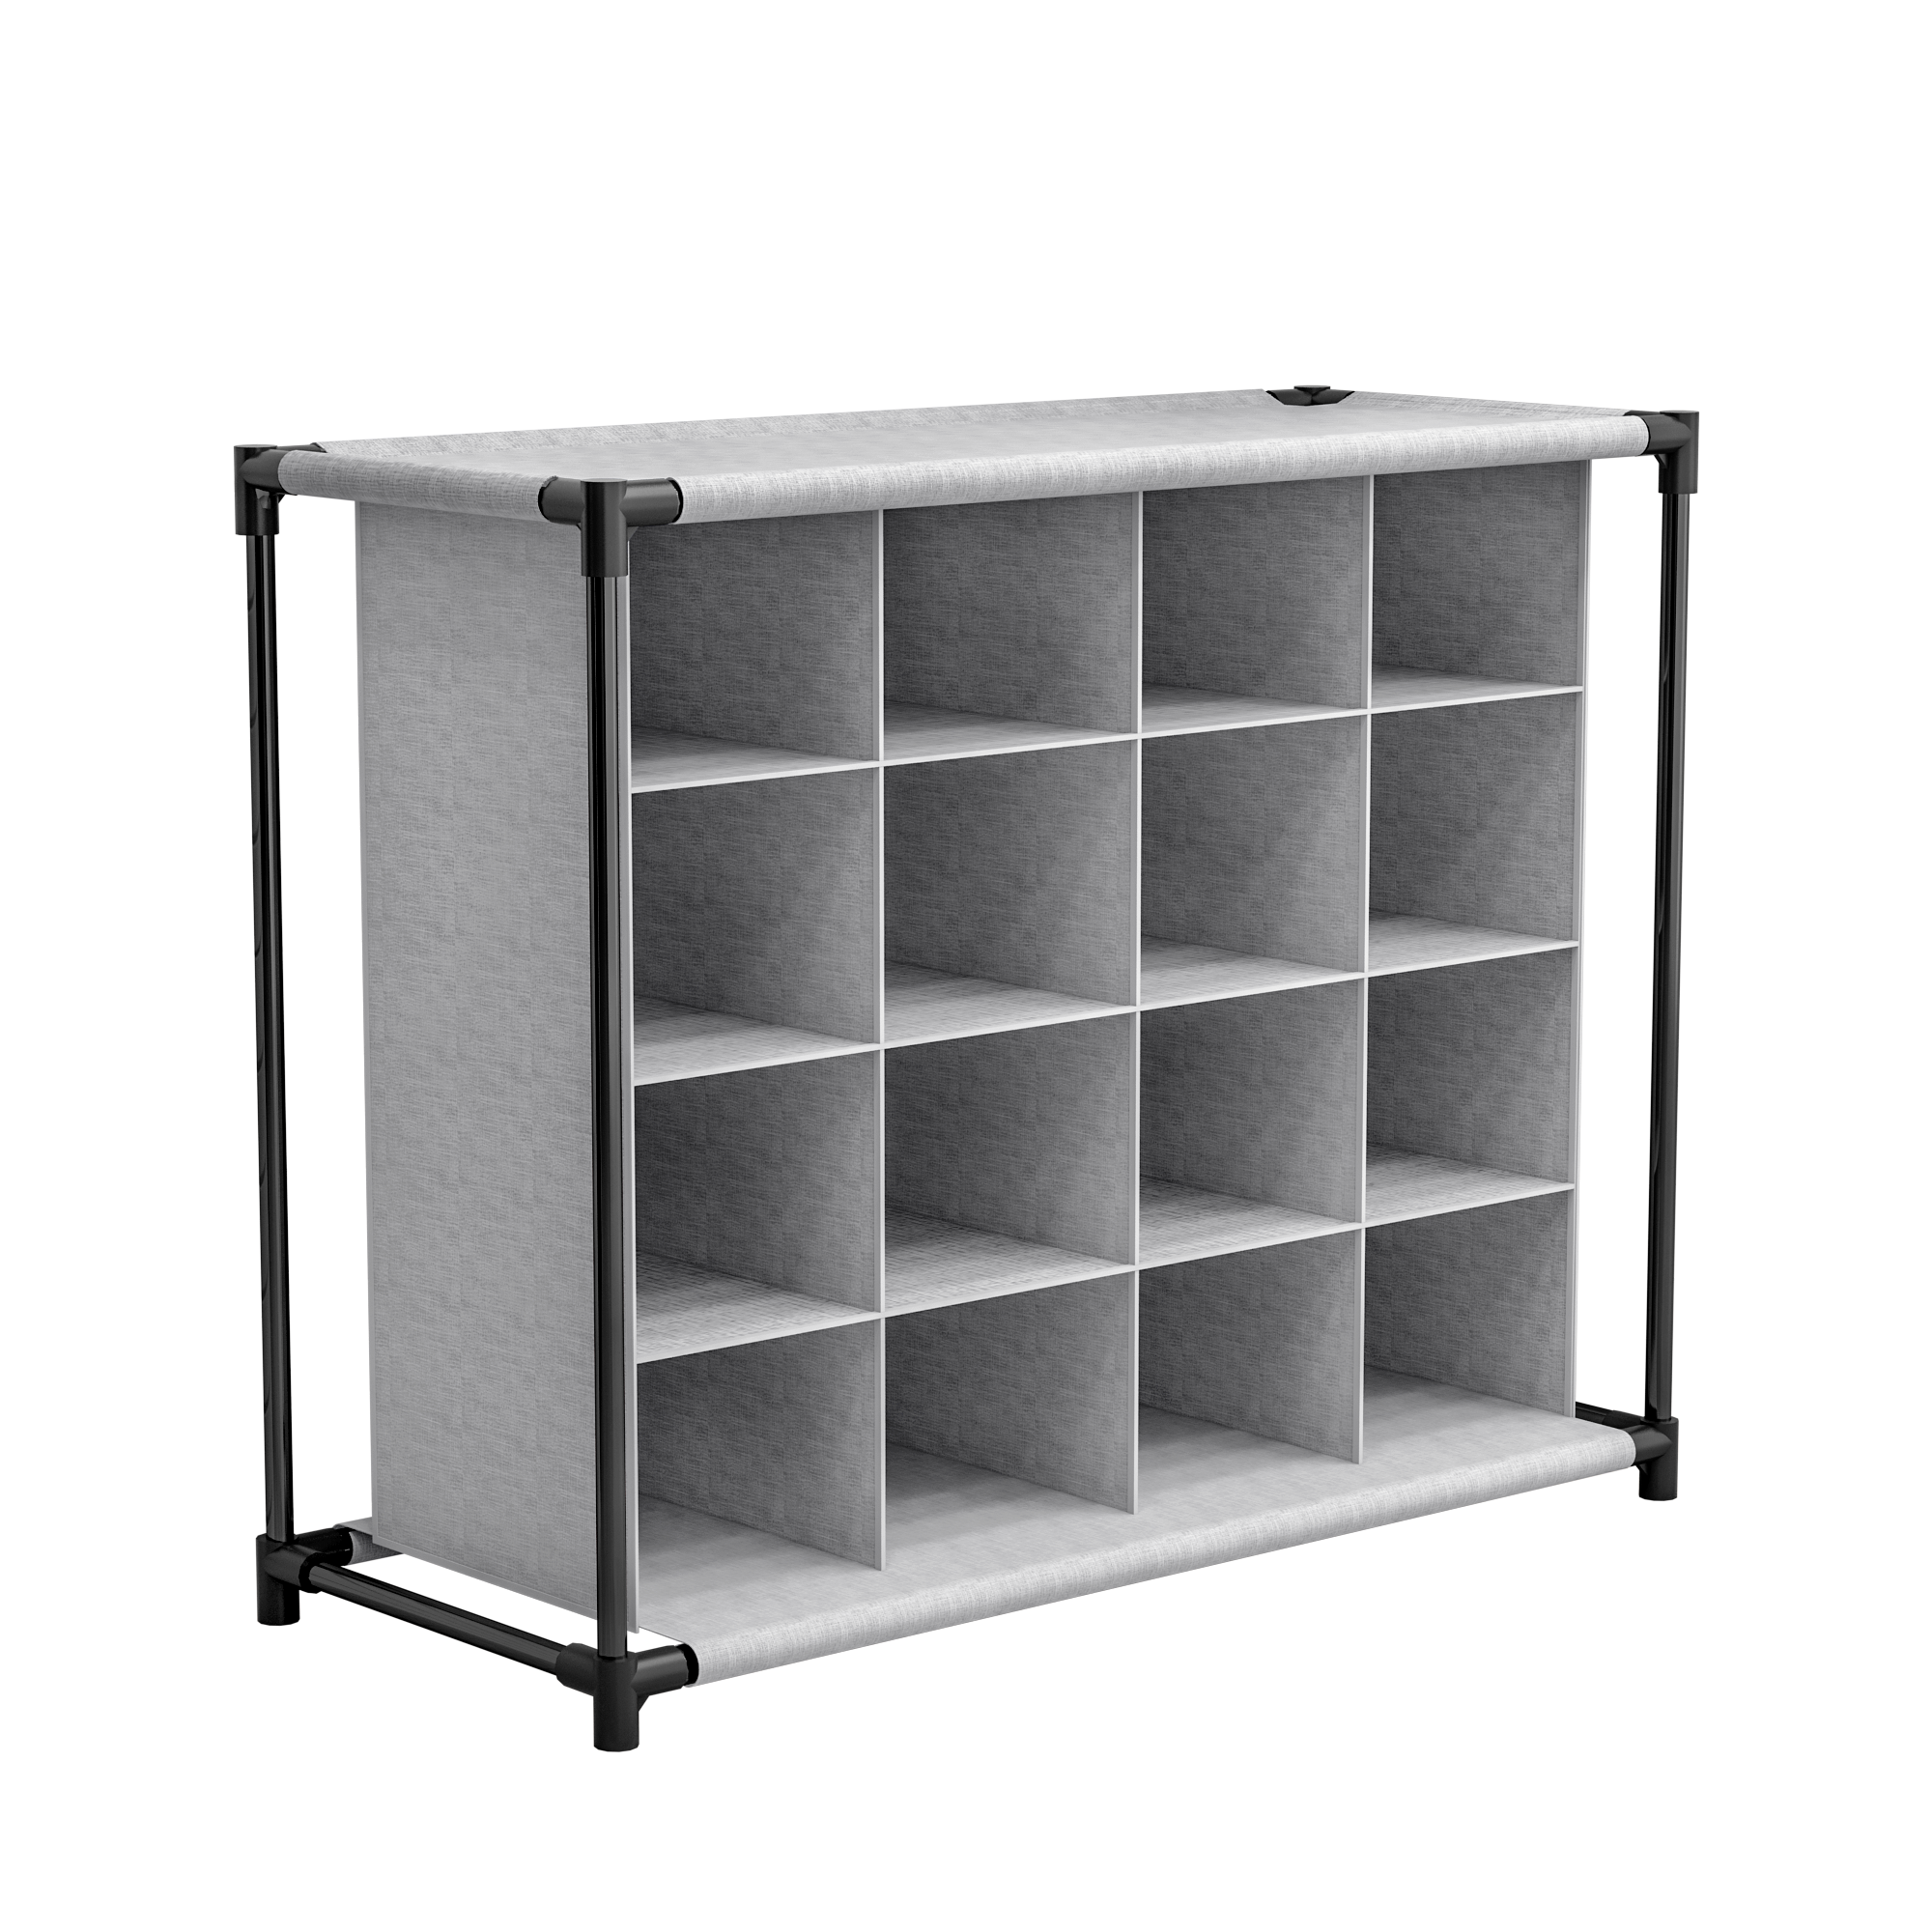 Suoernuo Hot Product Organizador de zapatos For Amazon